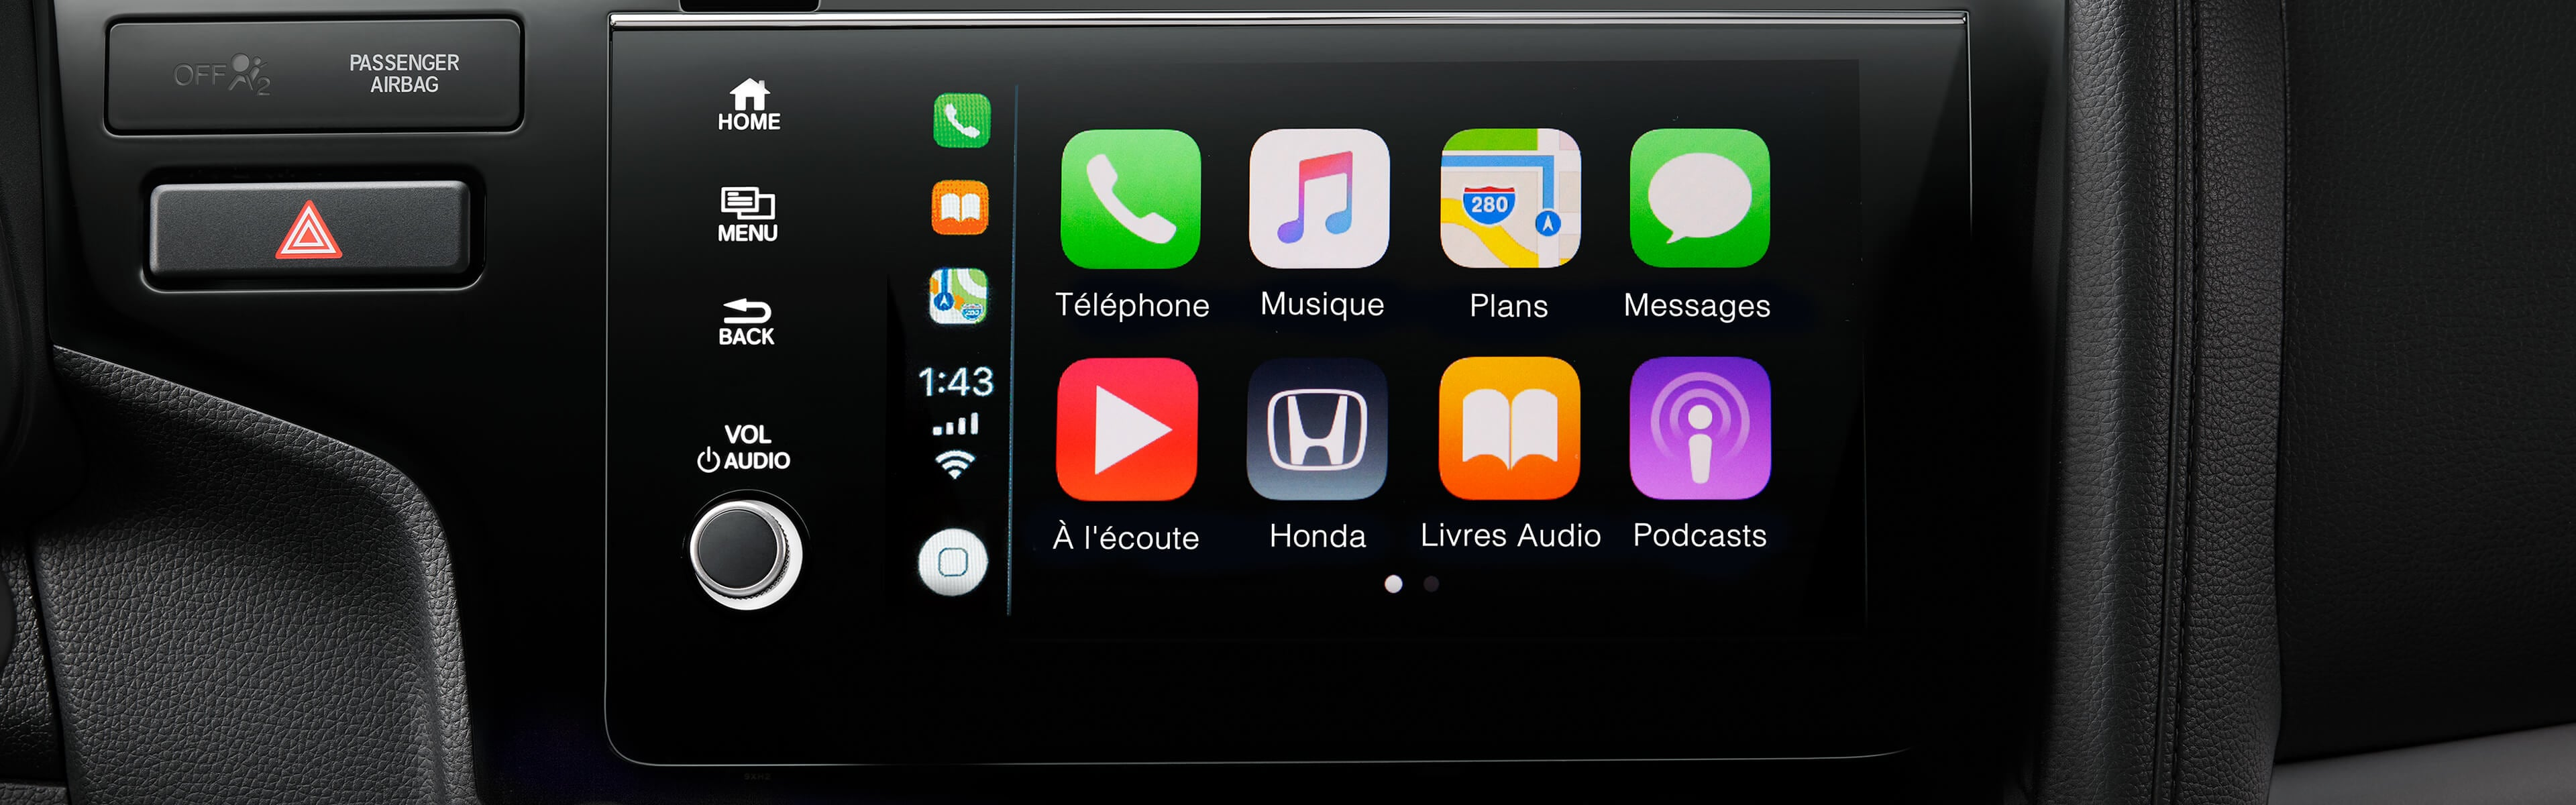 Image du système Apple CarPlay de la Honda Fit 2019